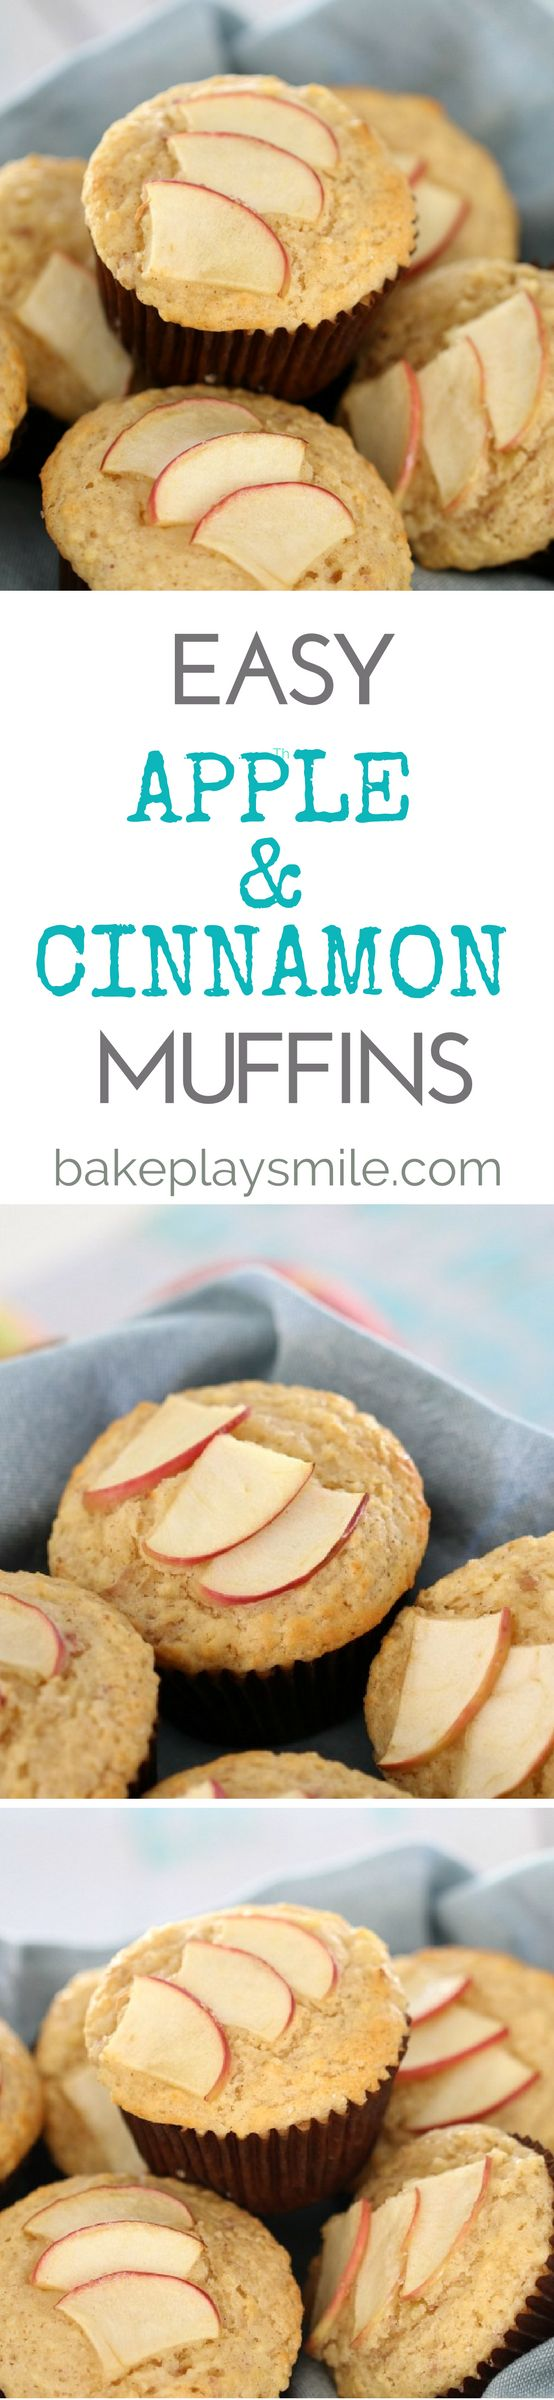 Thermomix Apple & Cinnamon Muffins  Moist and super delicious… these easy Apple & Cinnamon Muffins are sure to be a winner with the whole family! Pop them into your little ones lunch boxes or simply enjoy one with an afternoon cuppa. #apple #cinnamon #muffins #easy #recipe #thermomix #conventional